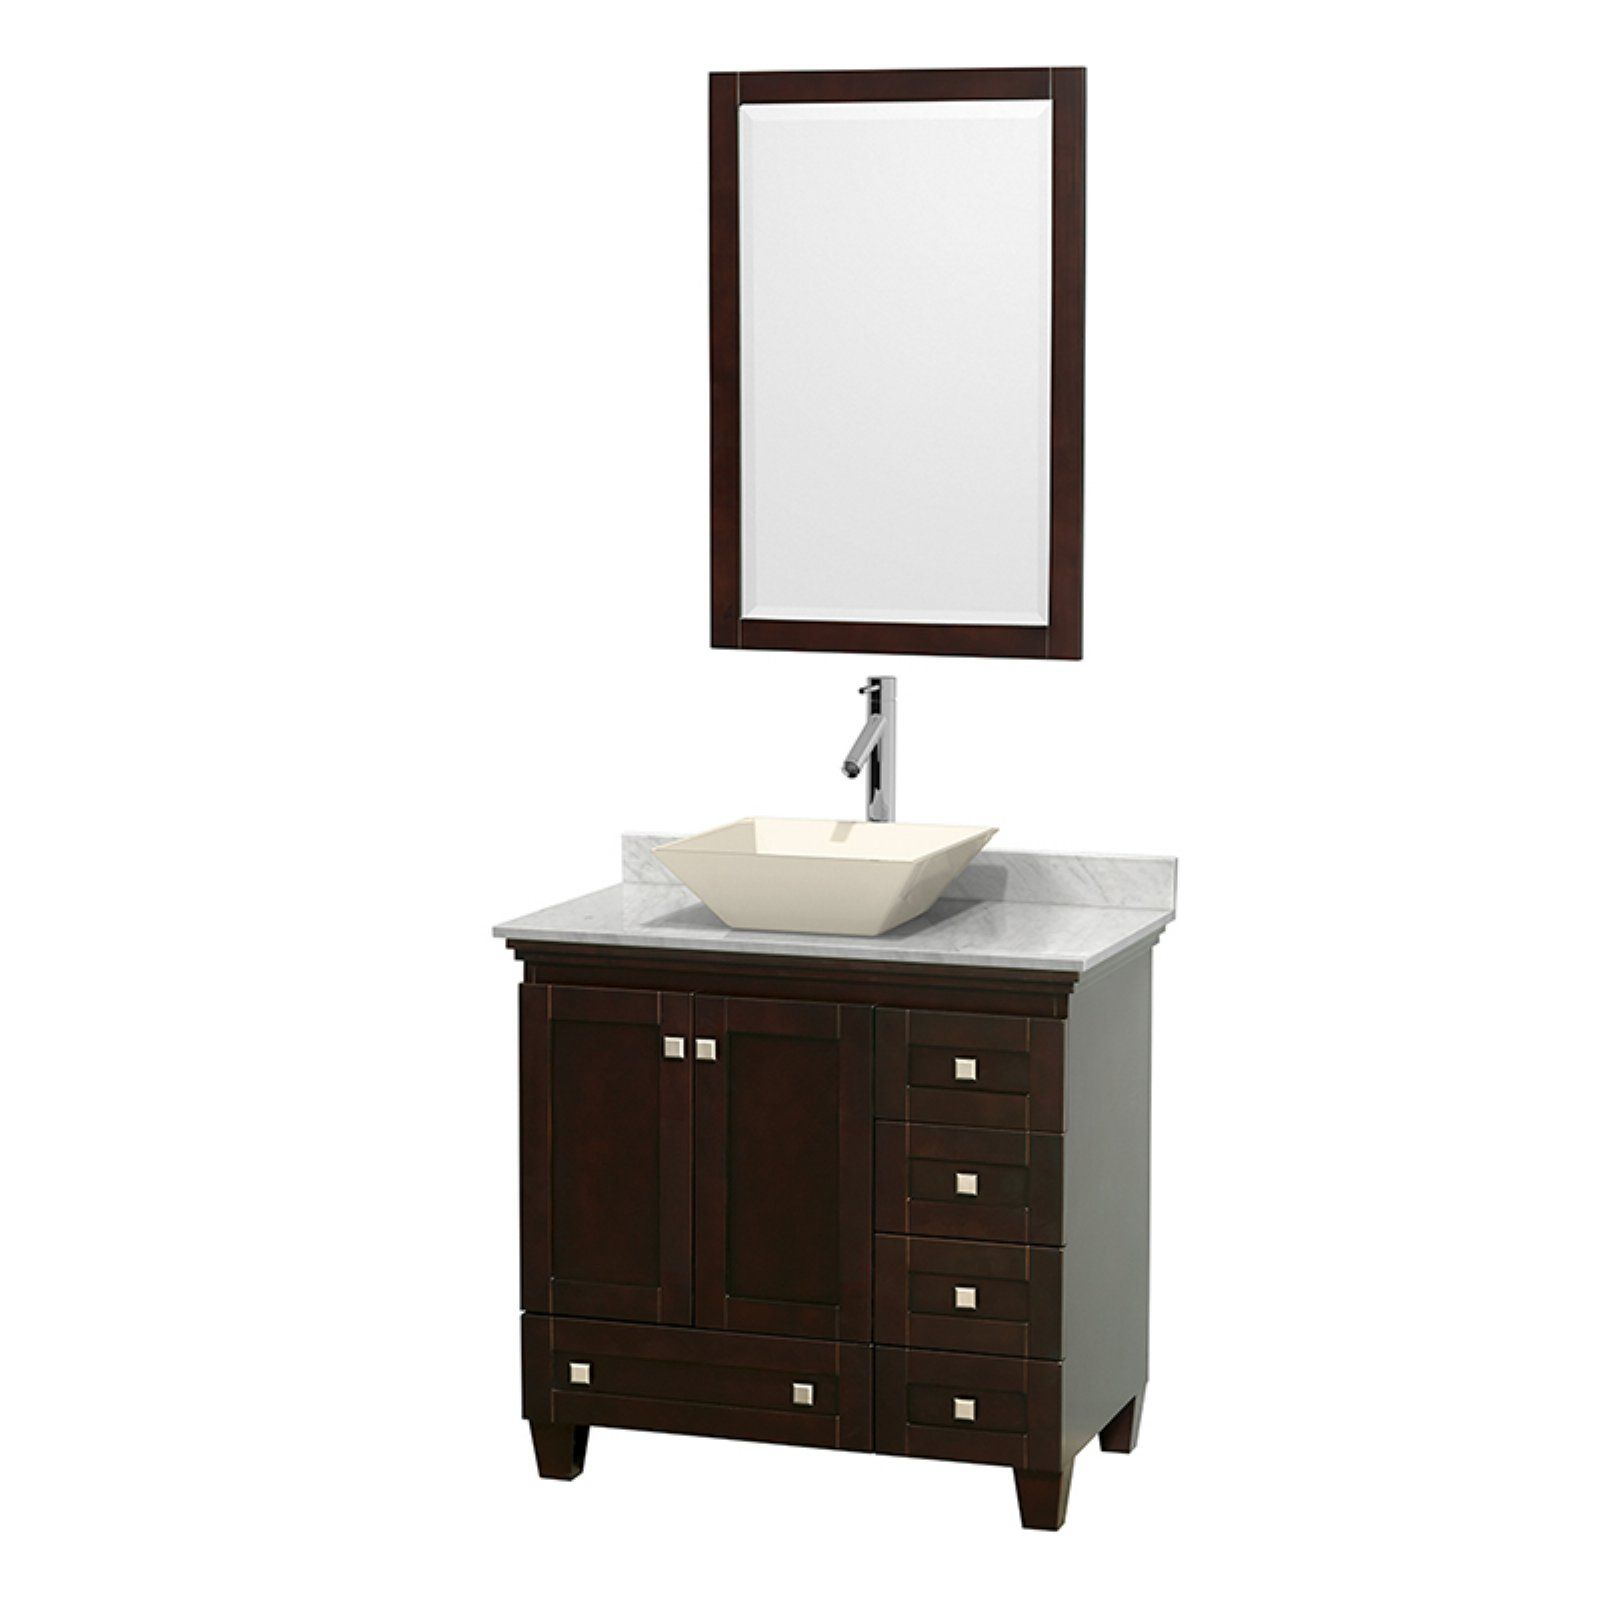 Wyndham Collection Wcv800036ses Acclaim 36 In Single Bathroom